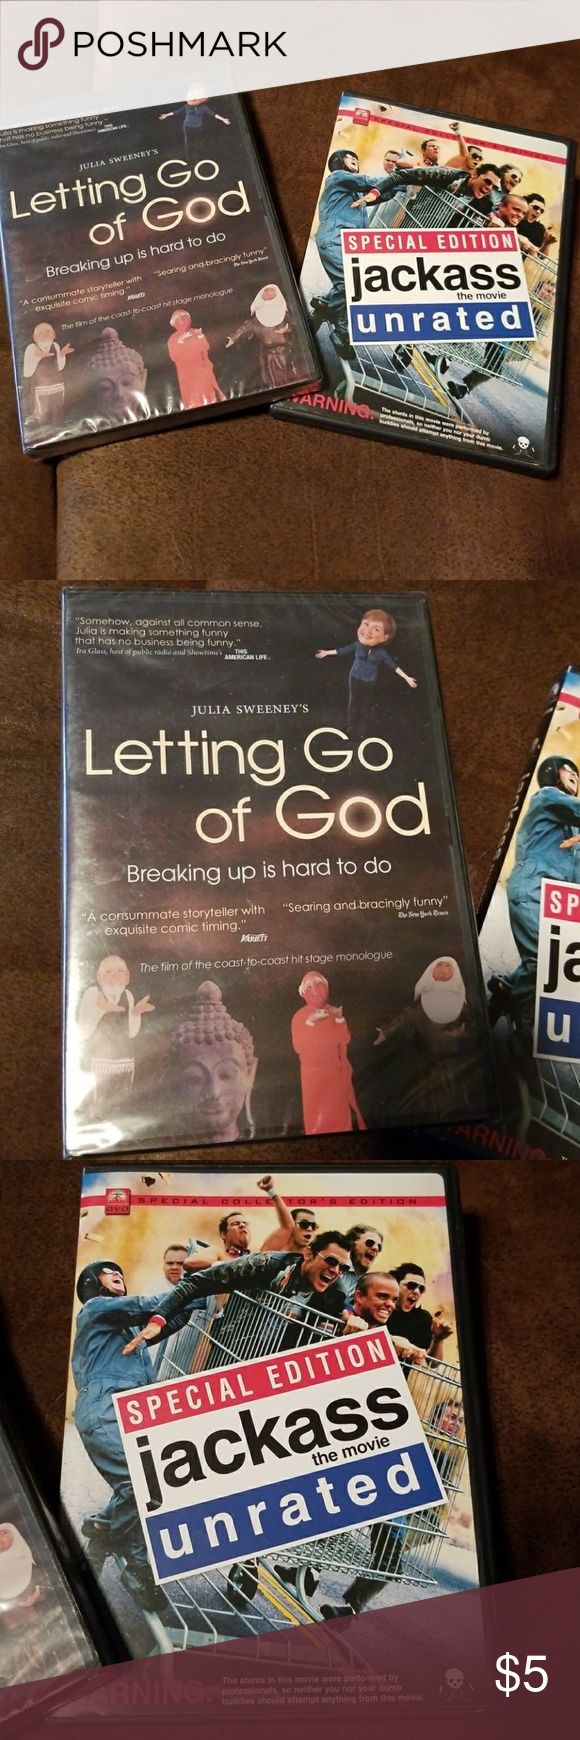 """Comedy duo 2 comedy dvd's Julia Sweeneyd """"Letting go of God"""" comedy is unopened, still wrapped in plastic. Jackass has been watched and is funny! Other"""